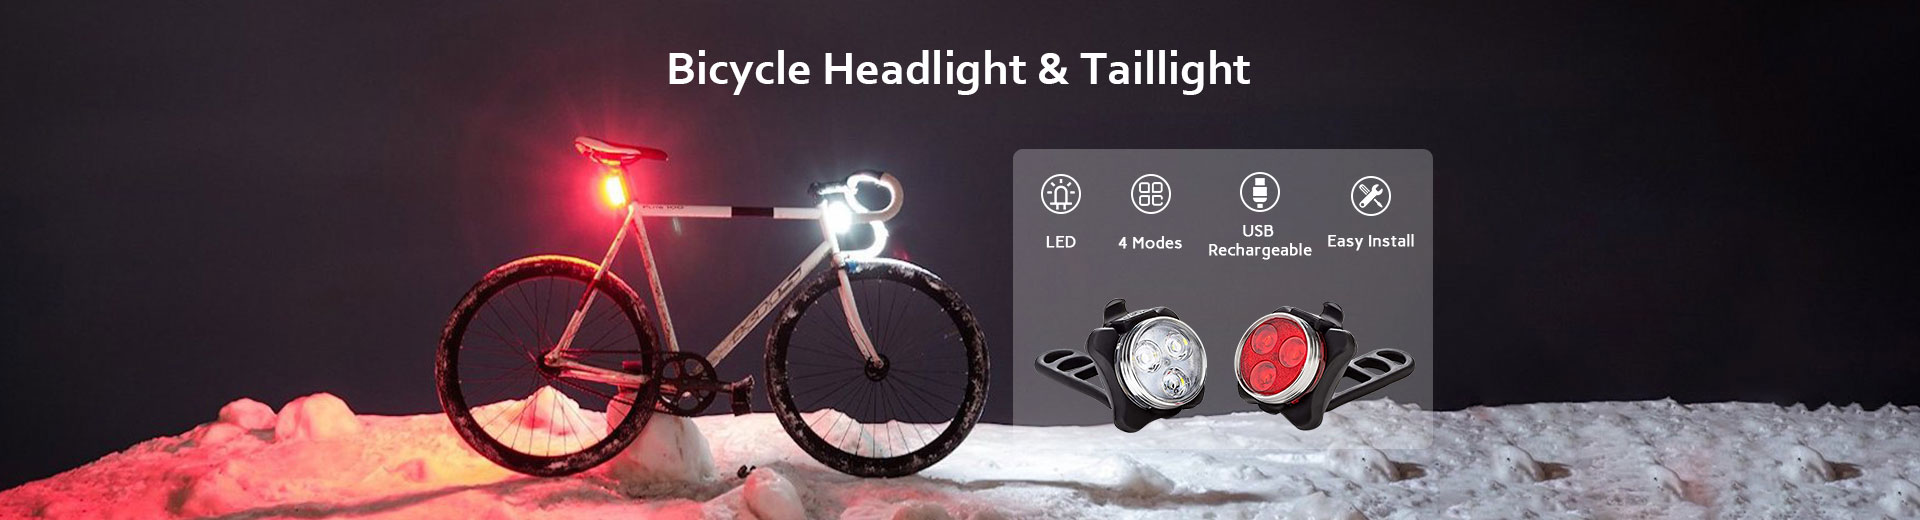 Bicycle Headlight & Taillight